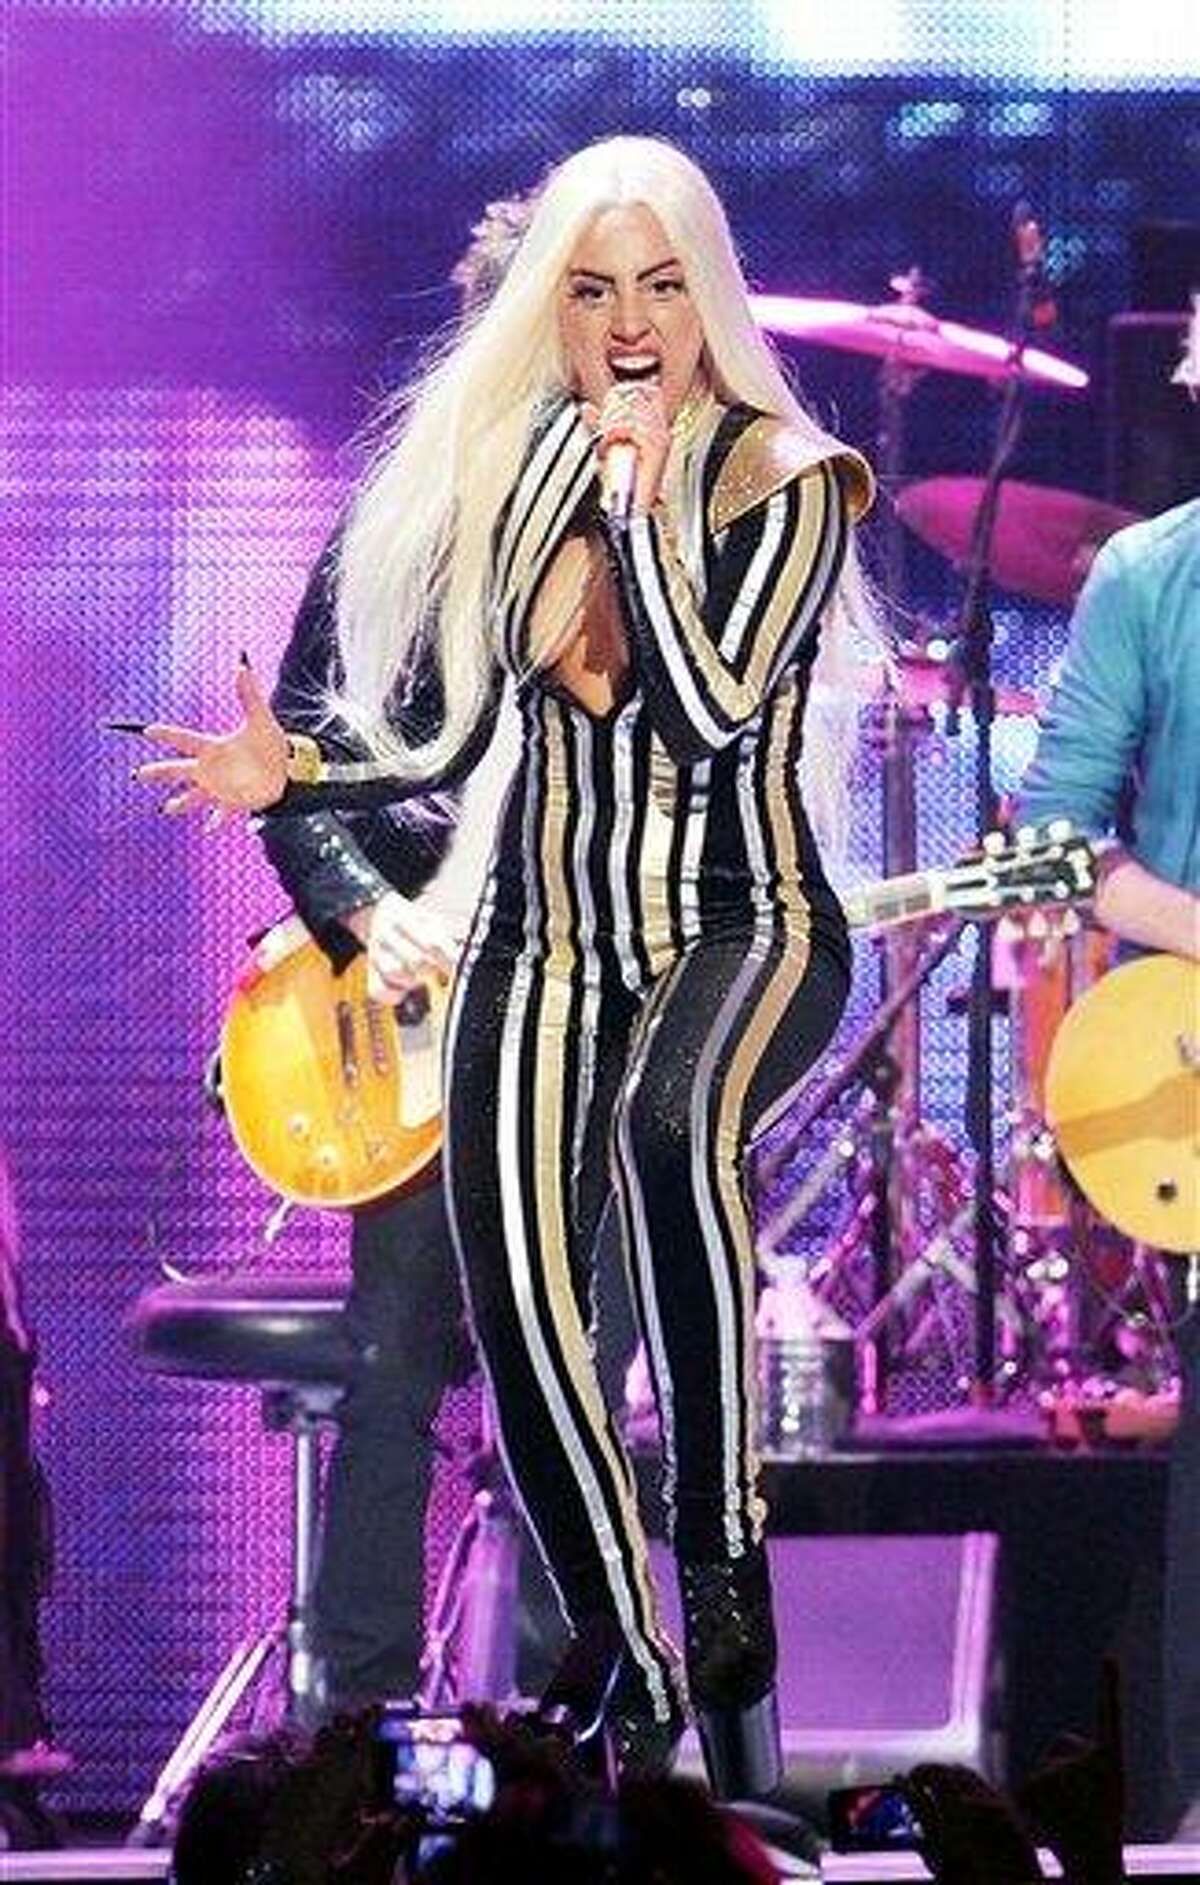 FILE - This Dec. 15, 2012 file photo shows singer Lady Gaga performing at the Prudential Center in Newark, N.J. Lady Gaga says she's completed surgery to fix her hip. The singer posted on her blog late Wednesday that she had hip surgery and that it